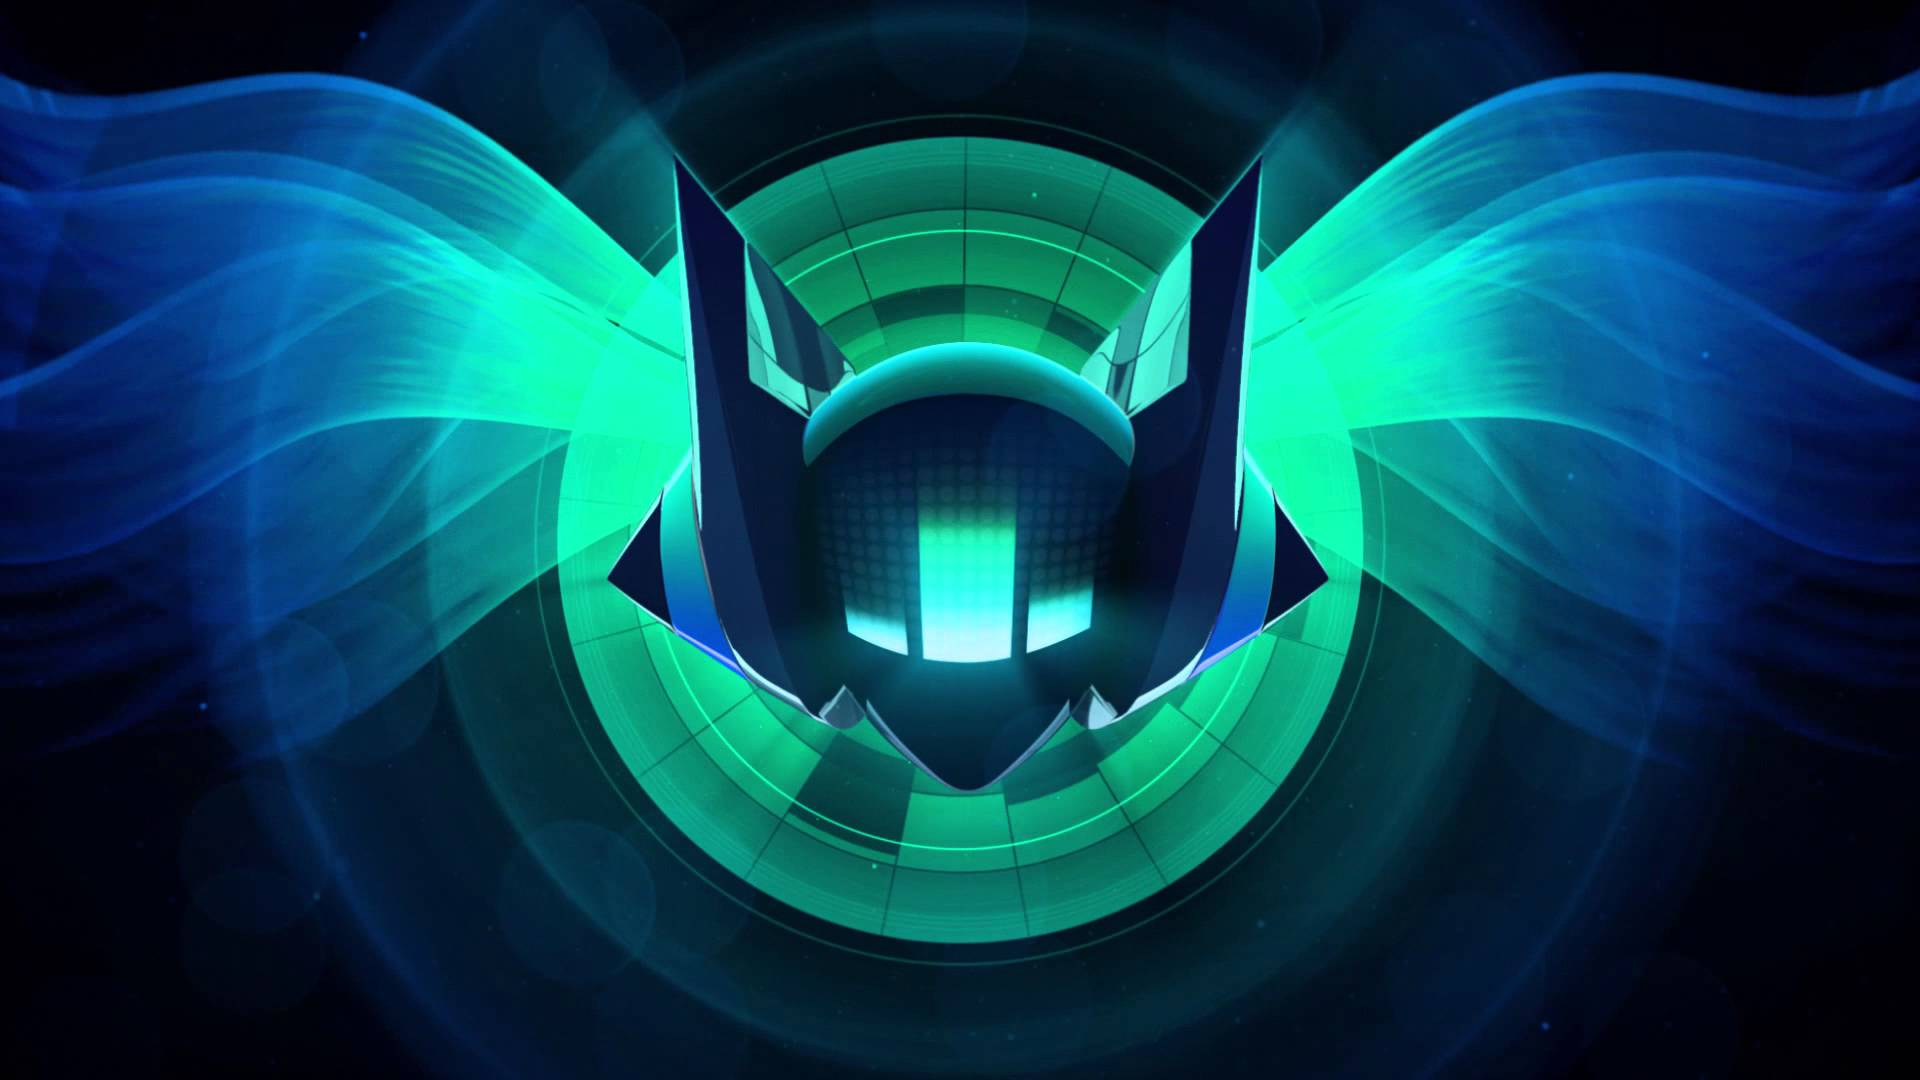 DJ Sona Kenetic Artwork wallpaper